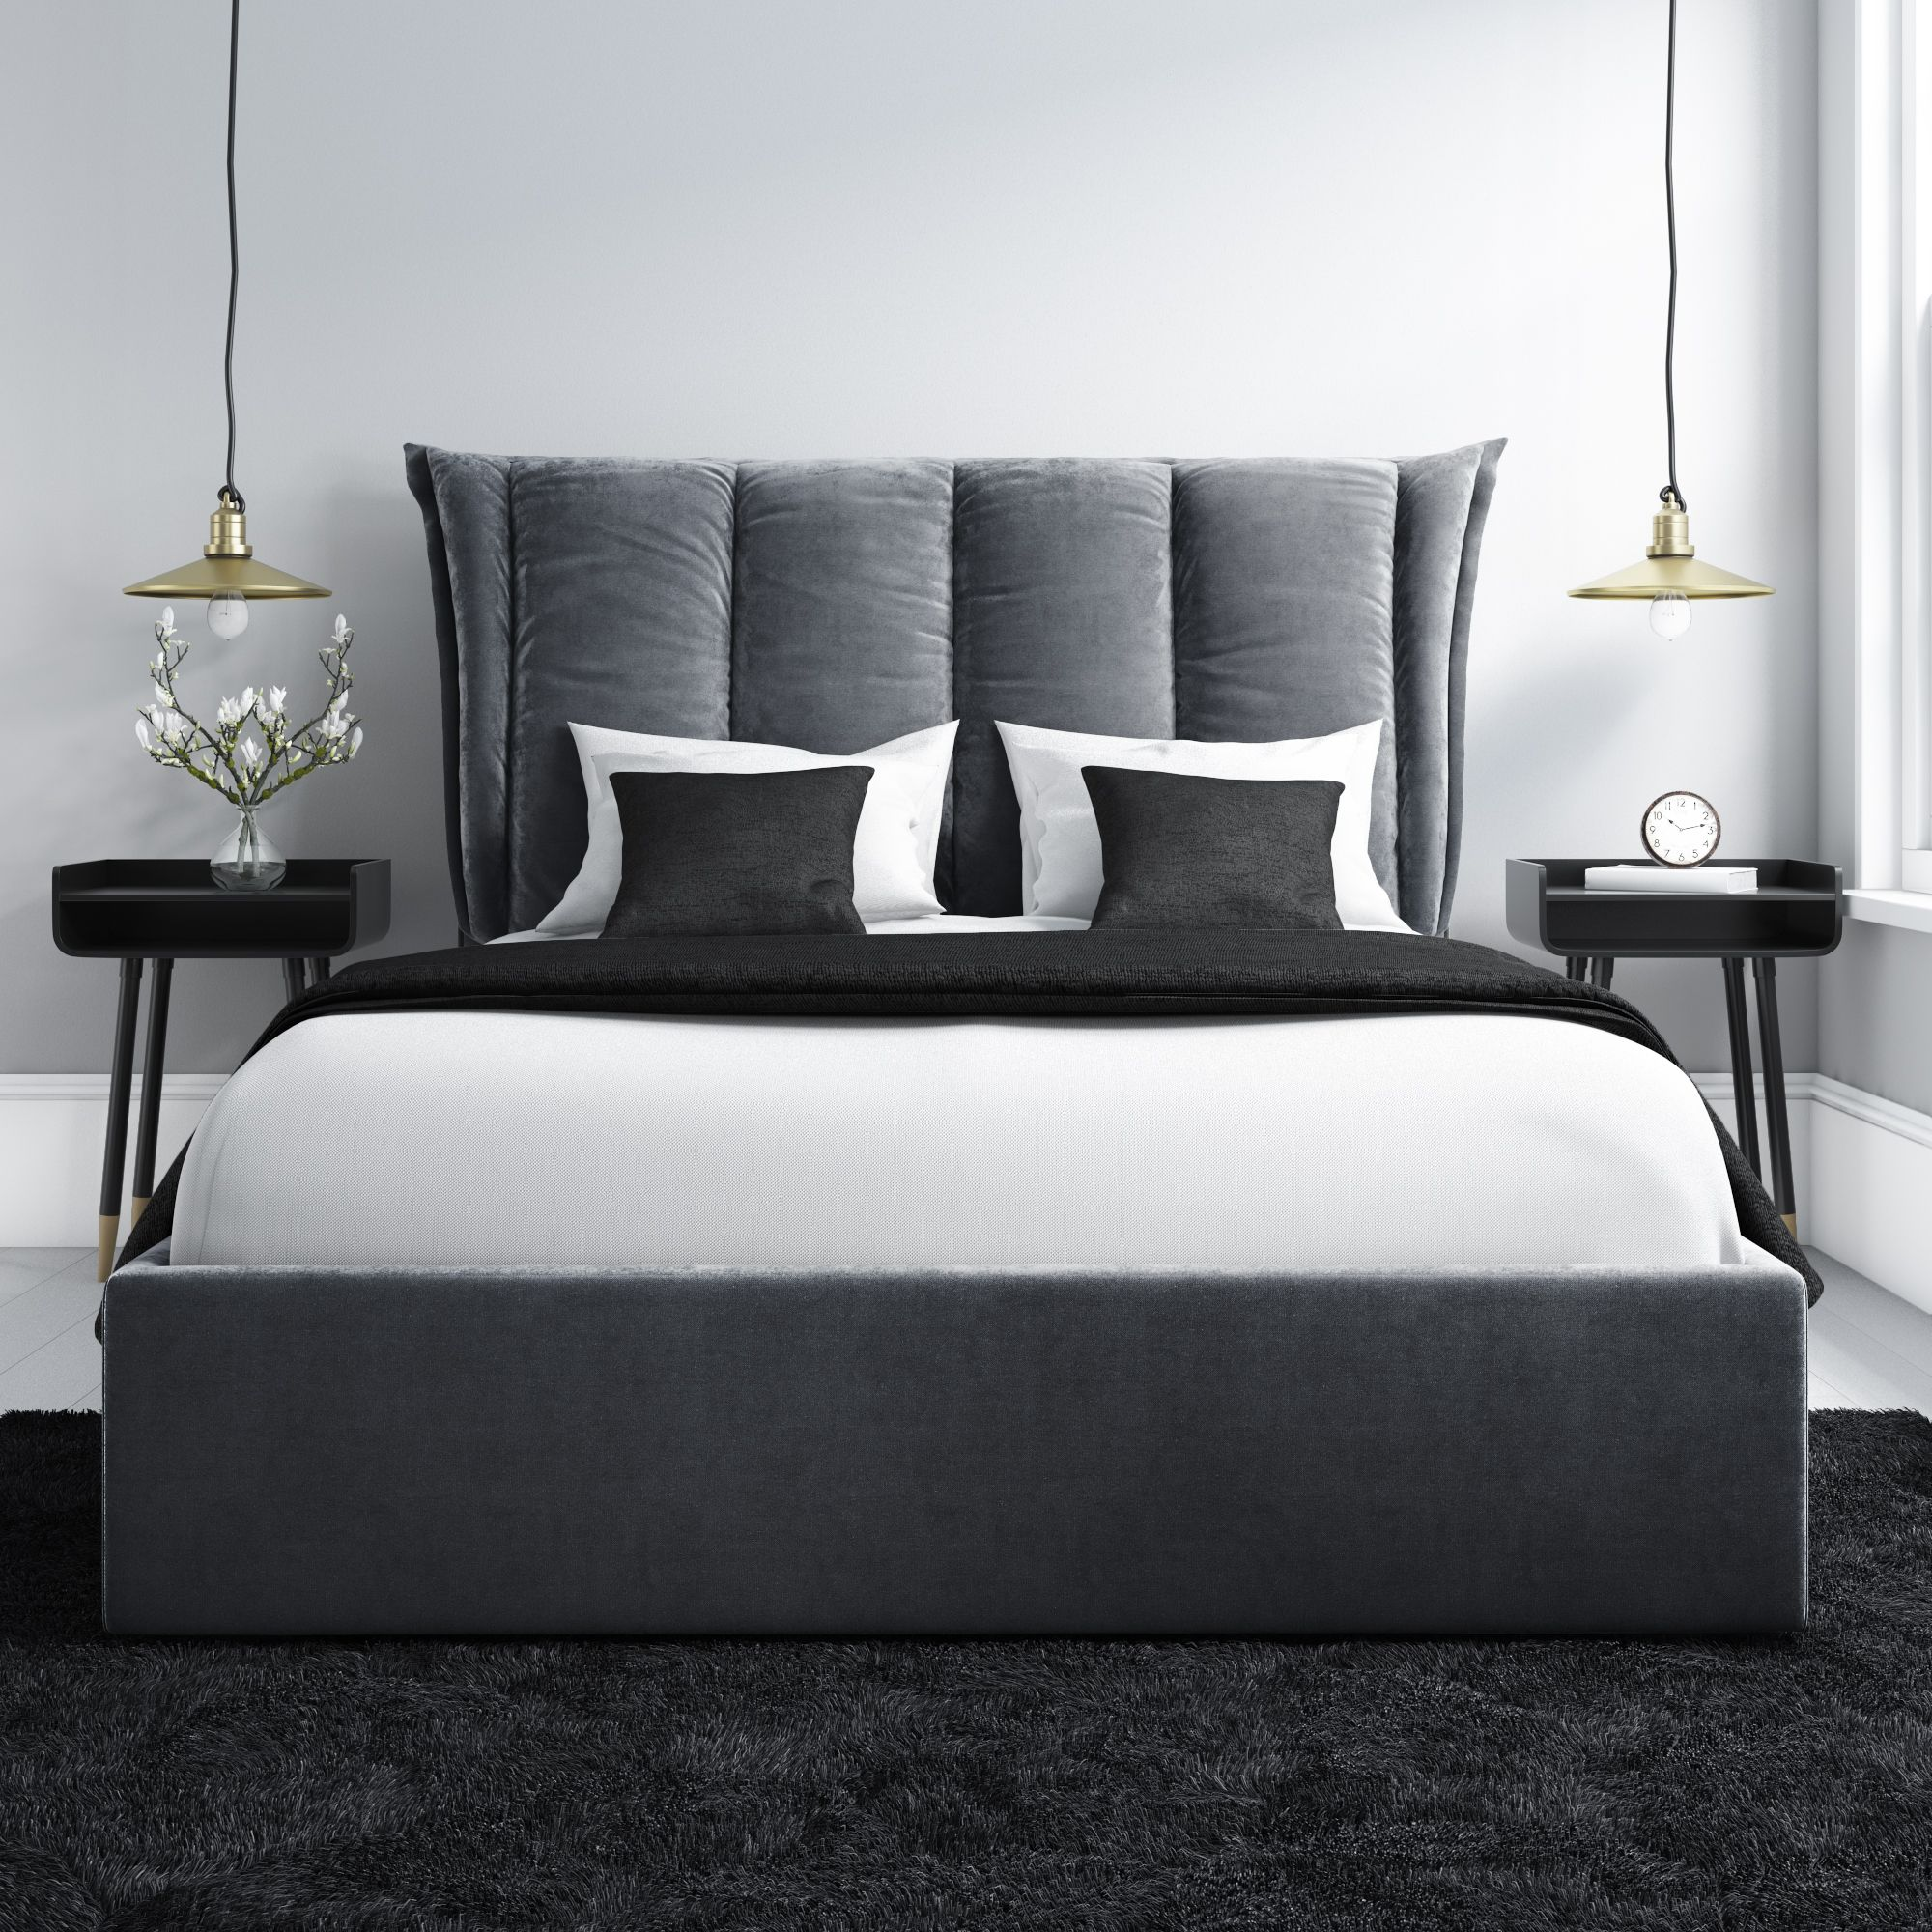 Velvet Ottoman Bed With Cushioned Headboard In Grey Cushion Headboard King Size Bed Furniture Ottoman Bed